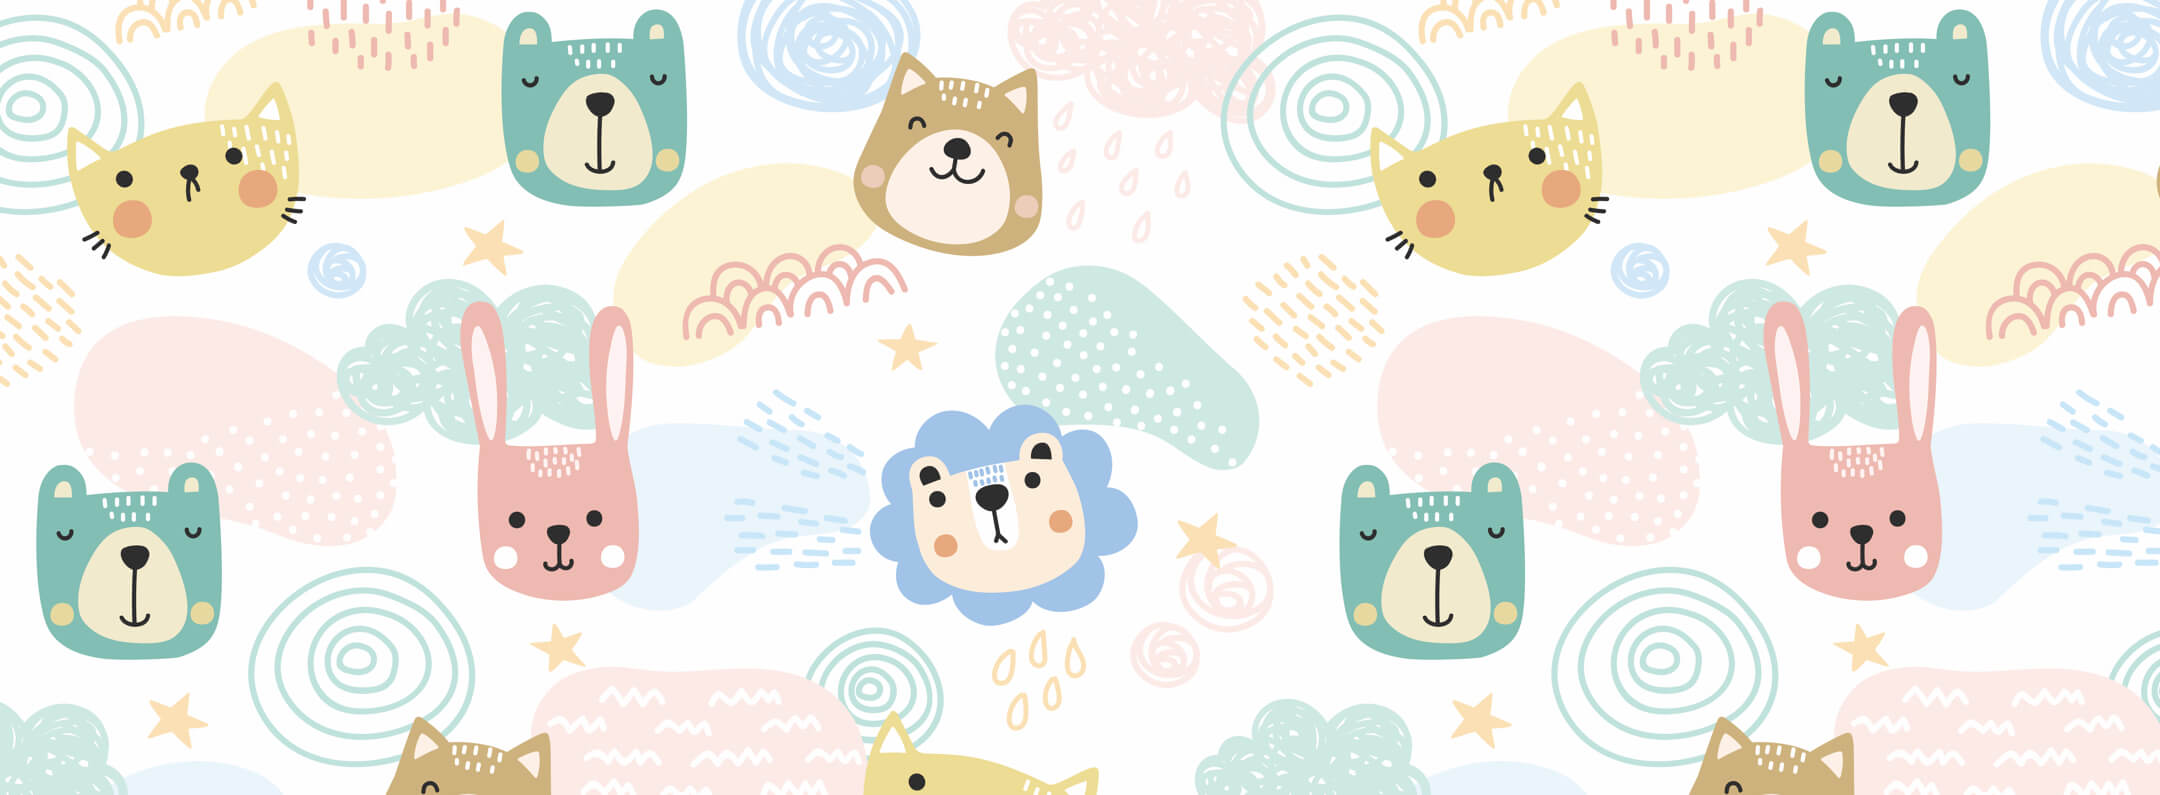 Cute Cat & Dog Animal Face Collection wallpaper